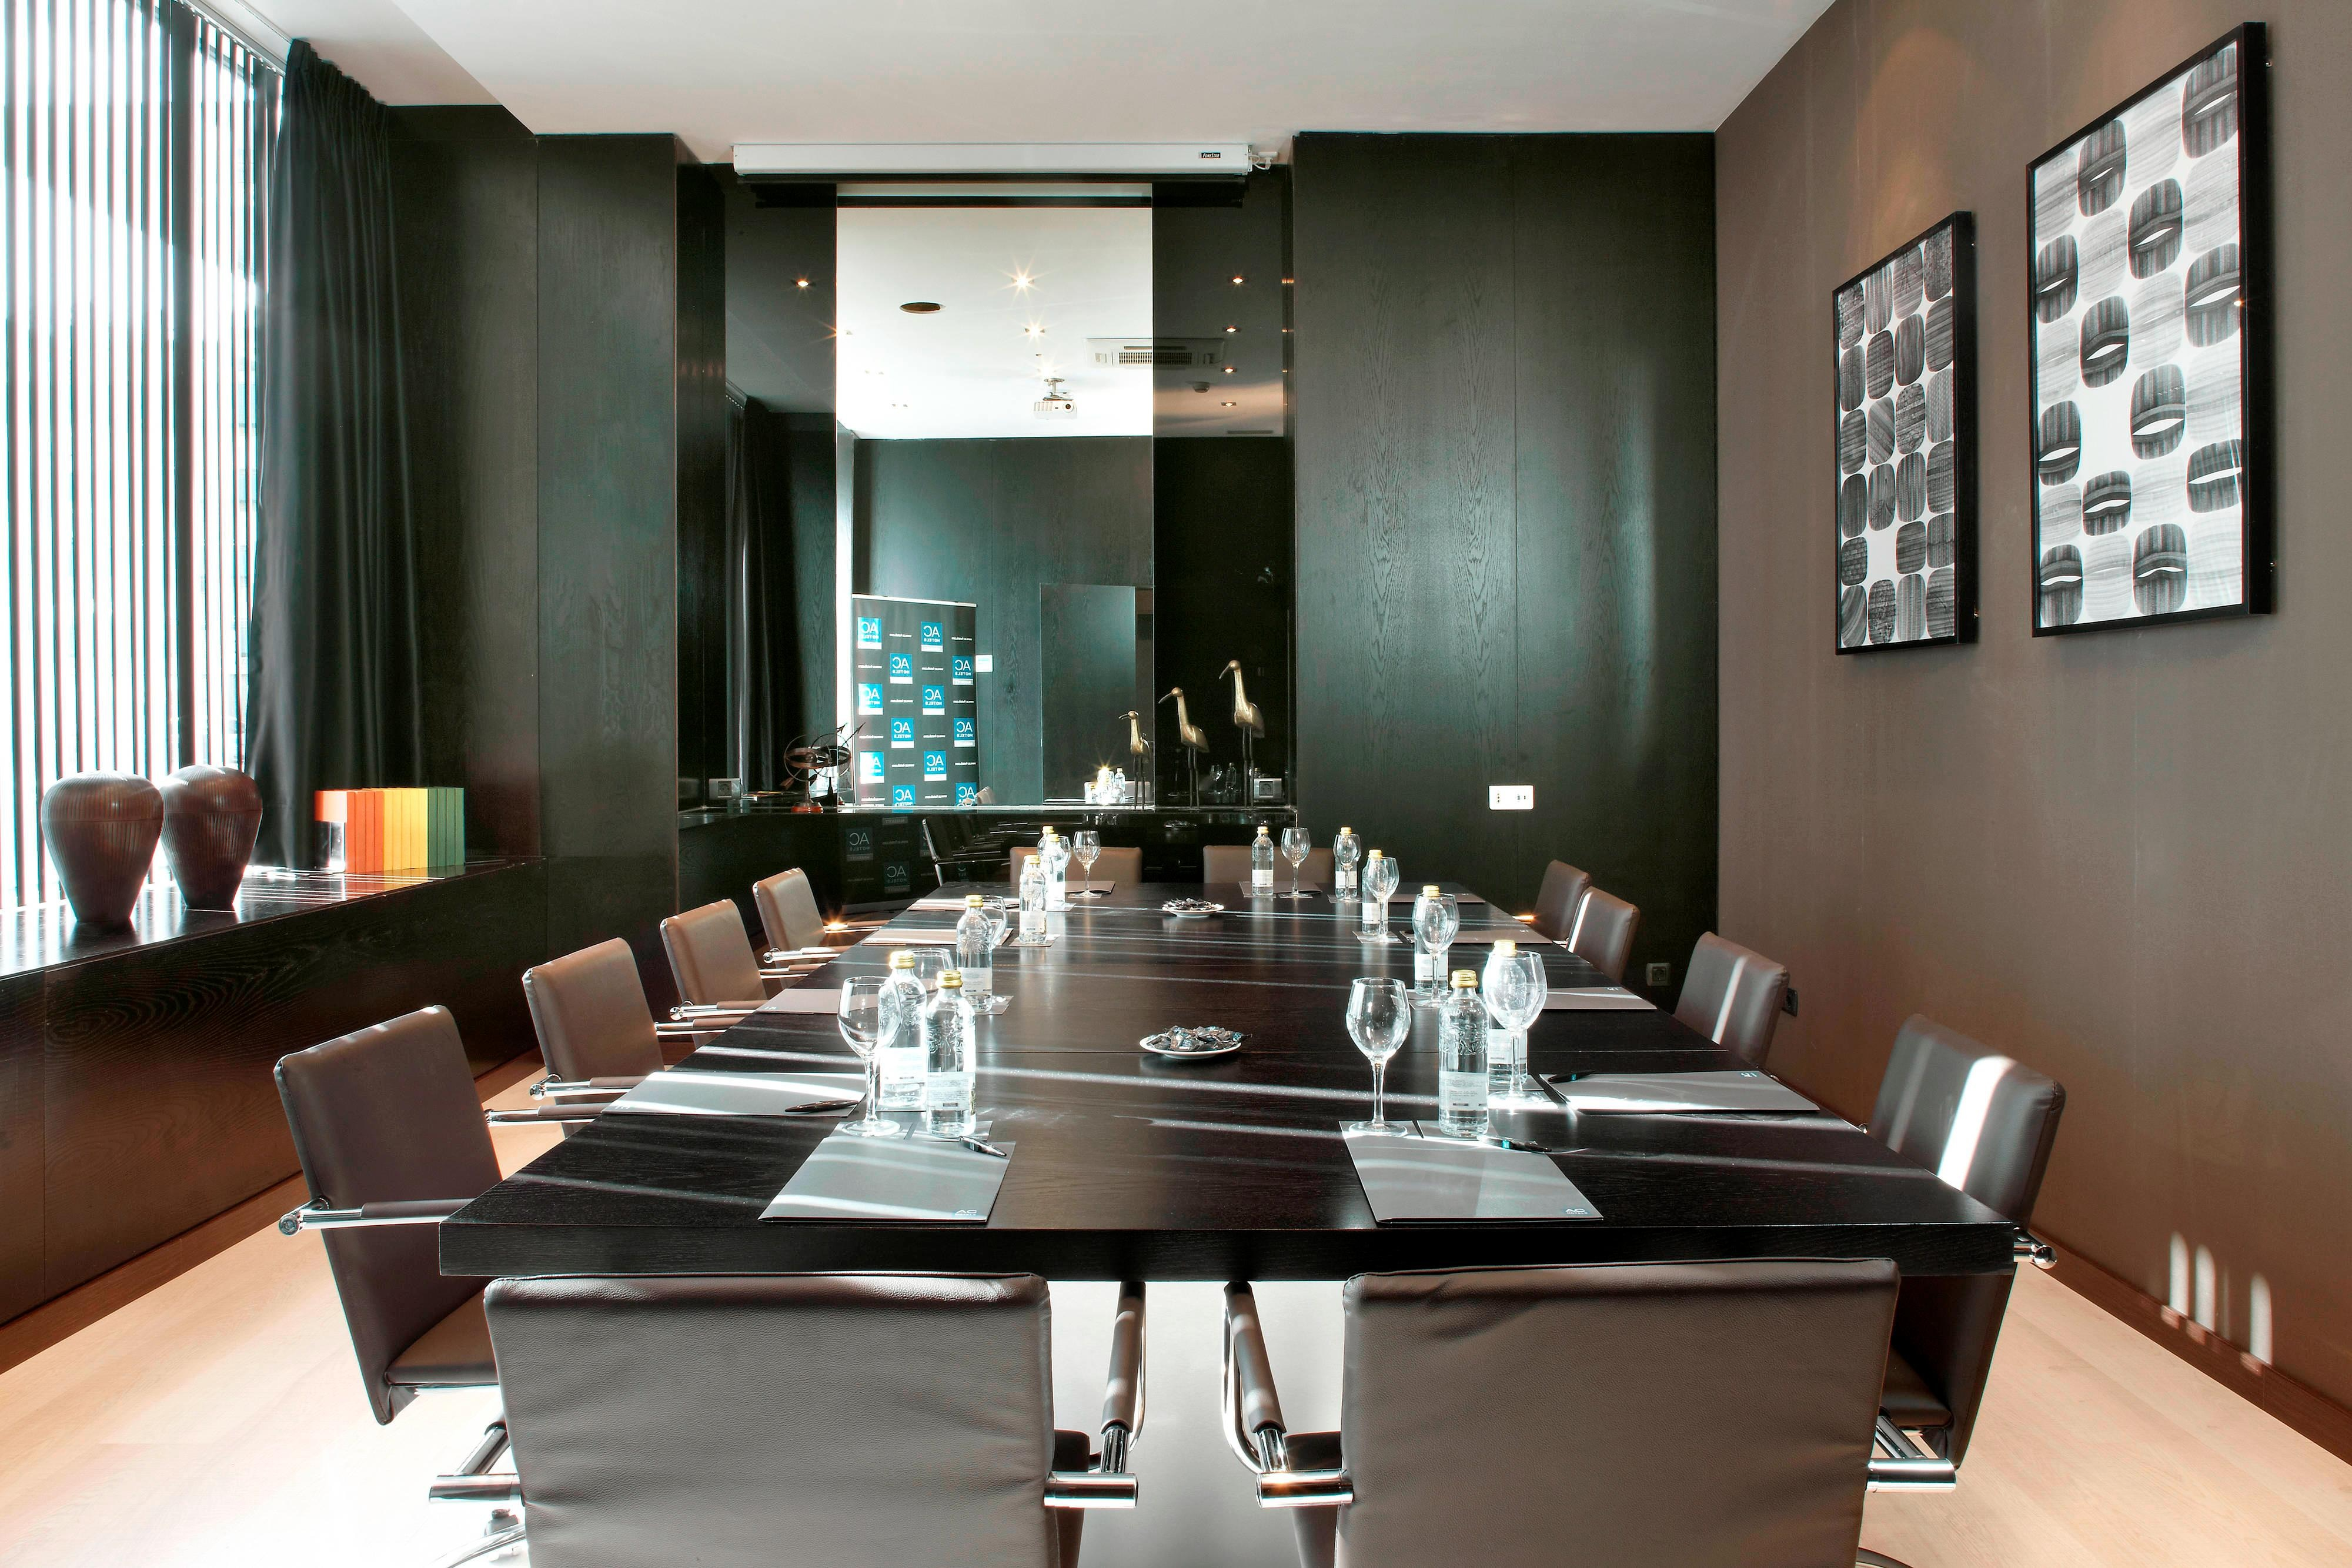 Ciutat de Palma Hotel Meeting Rooms